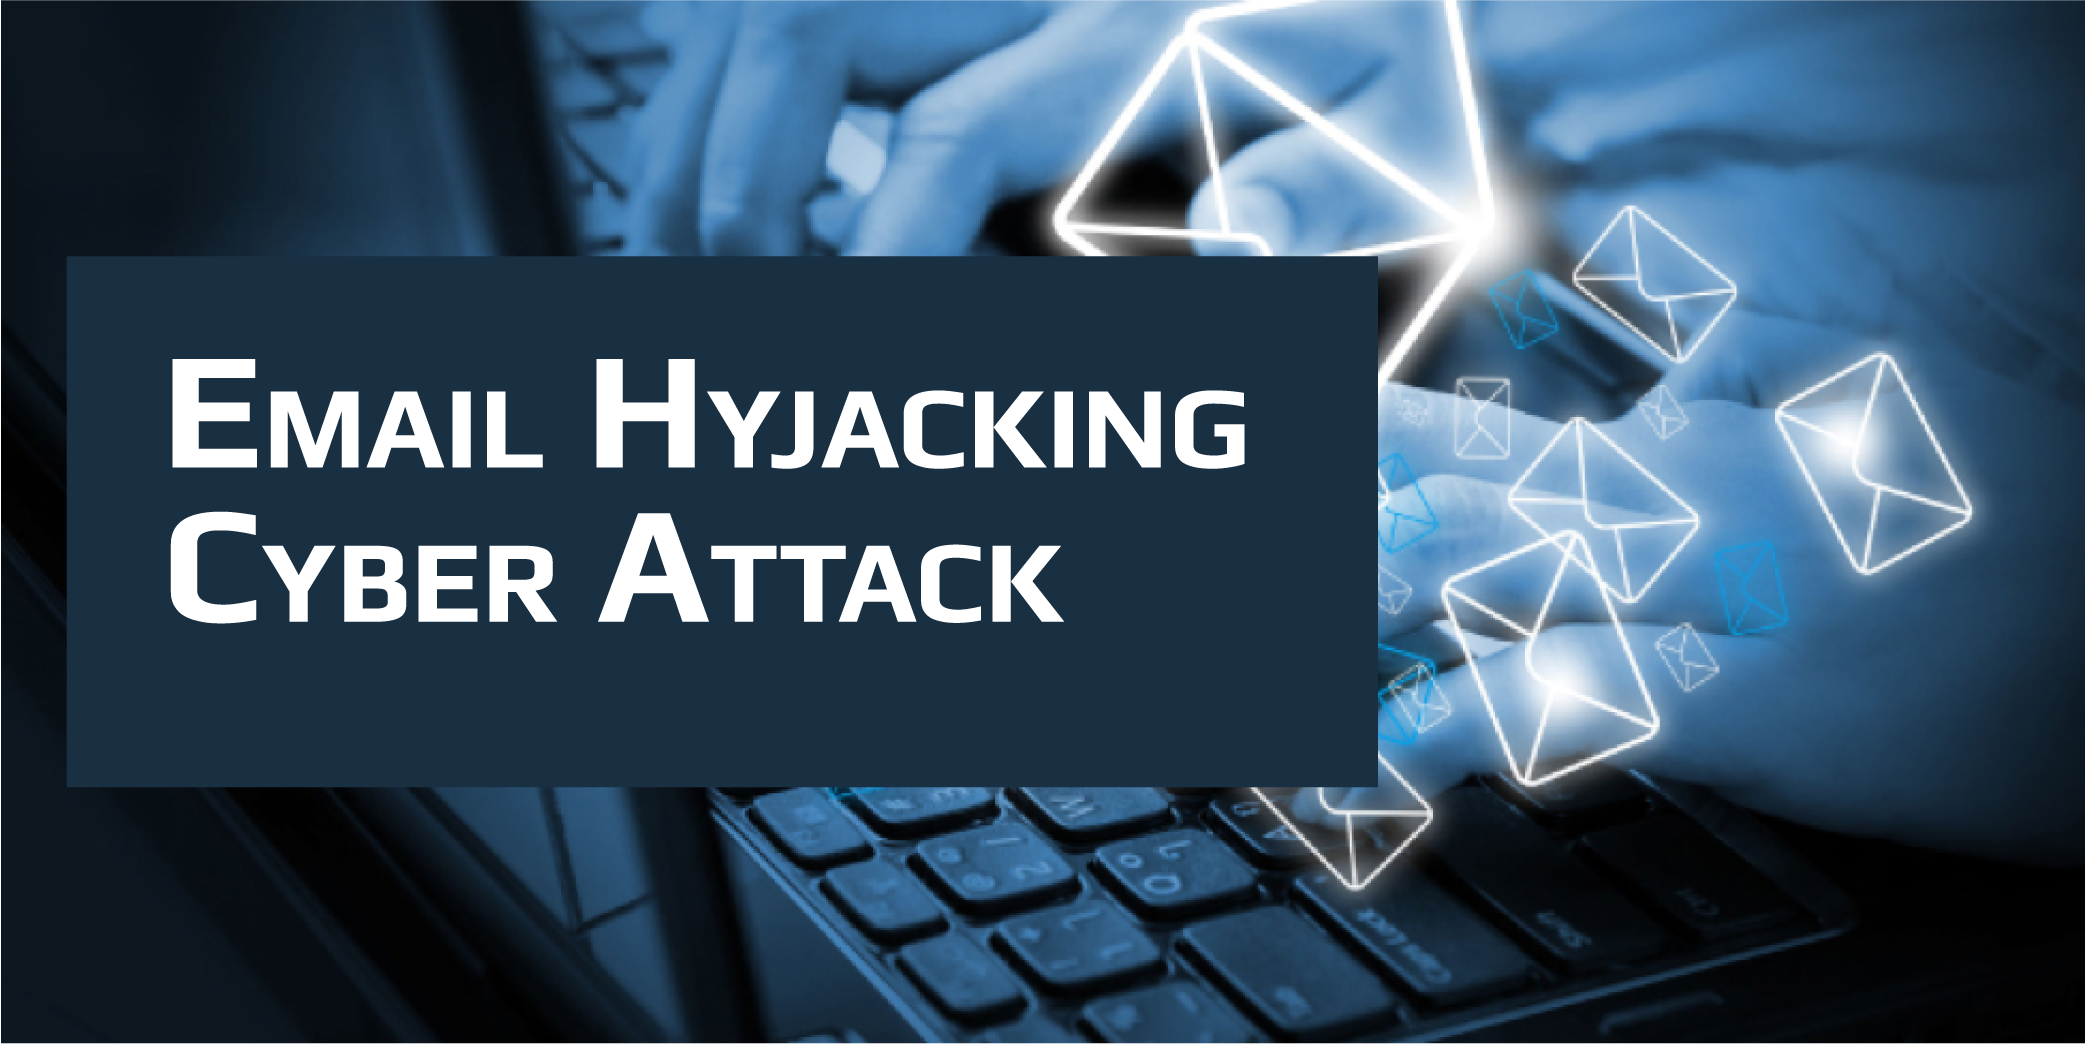 Email Hyjacking